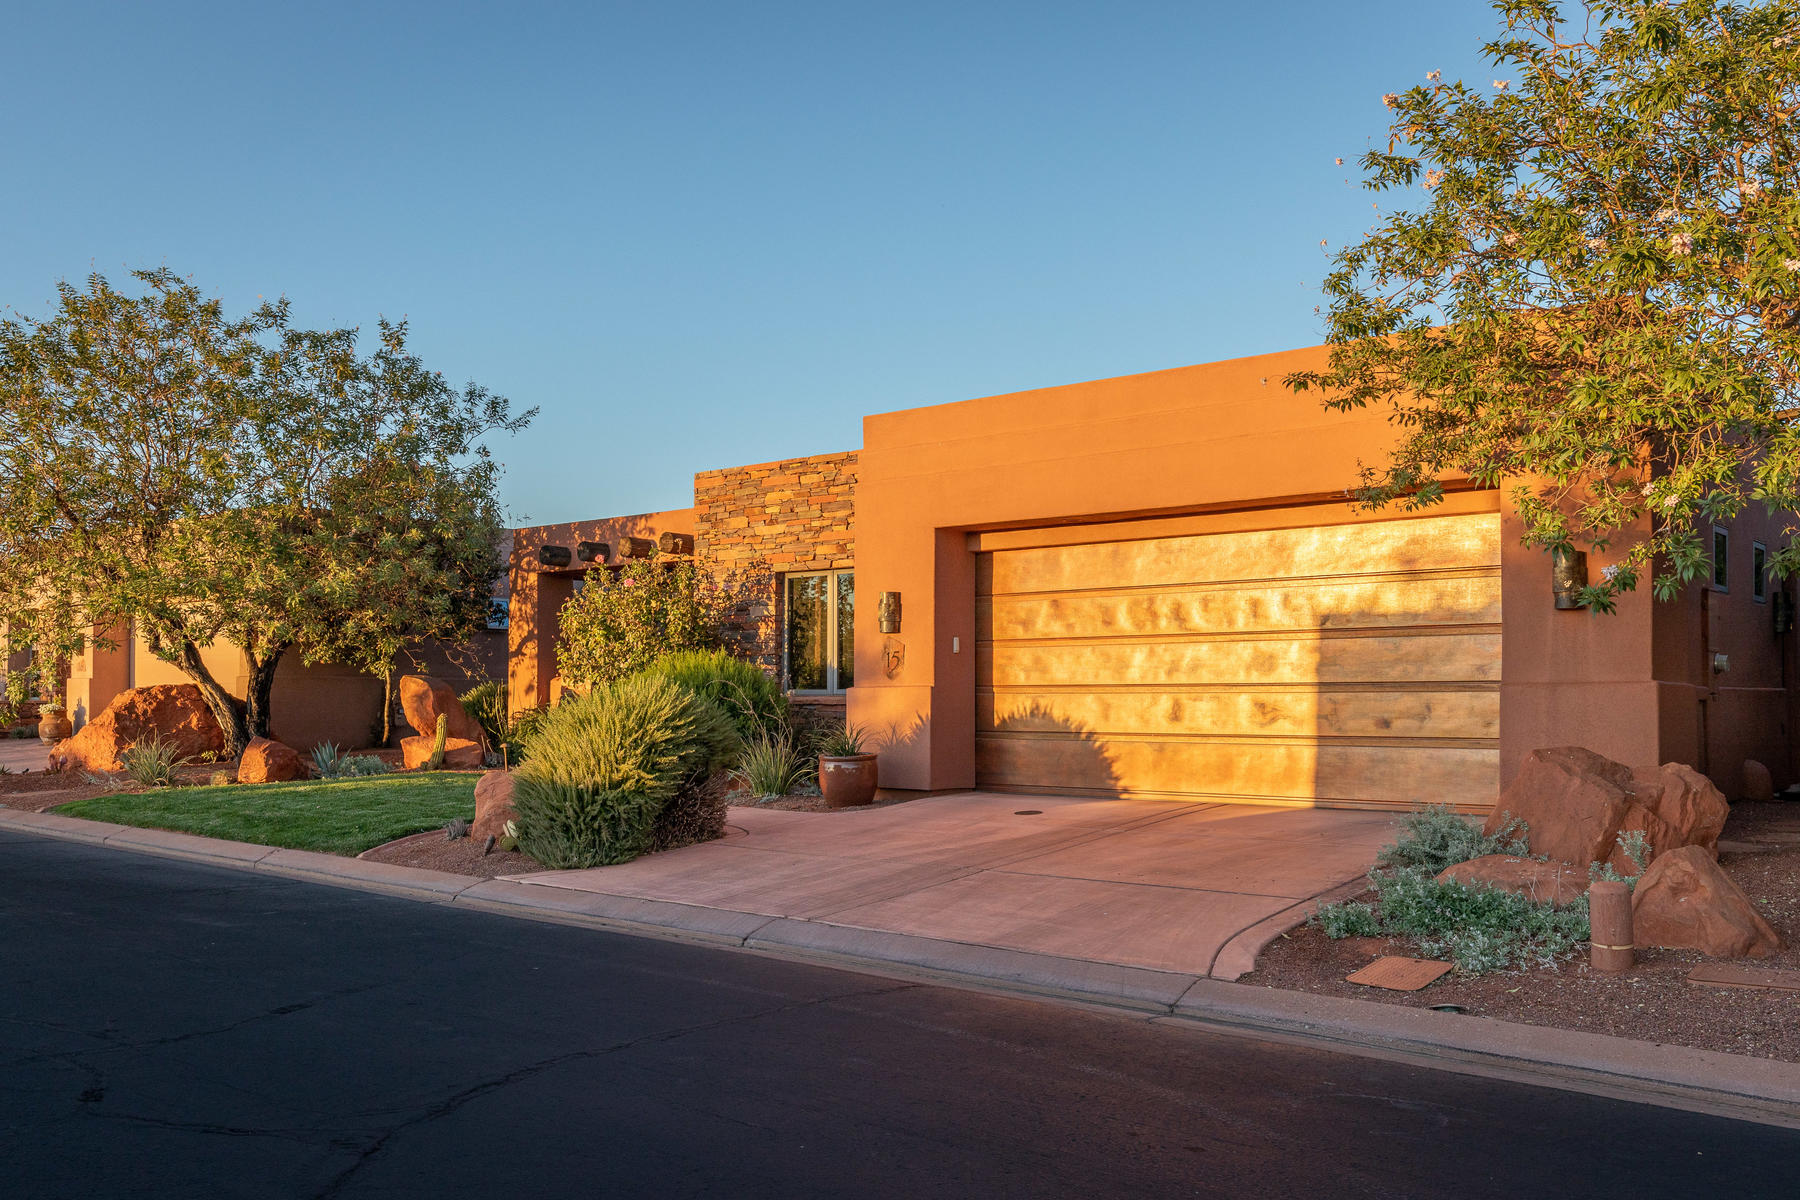 Single Family Homes for Sale at Serenity On The 7th Fairway 2410 W Entrada Trail #15, St. George, Utah 84770 United States